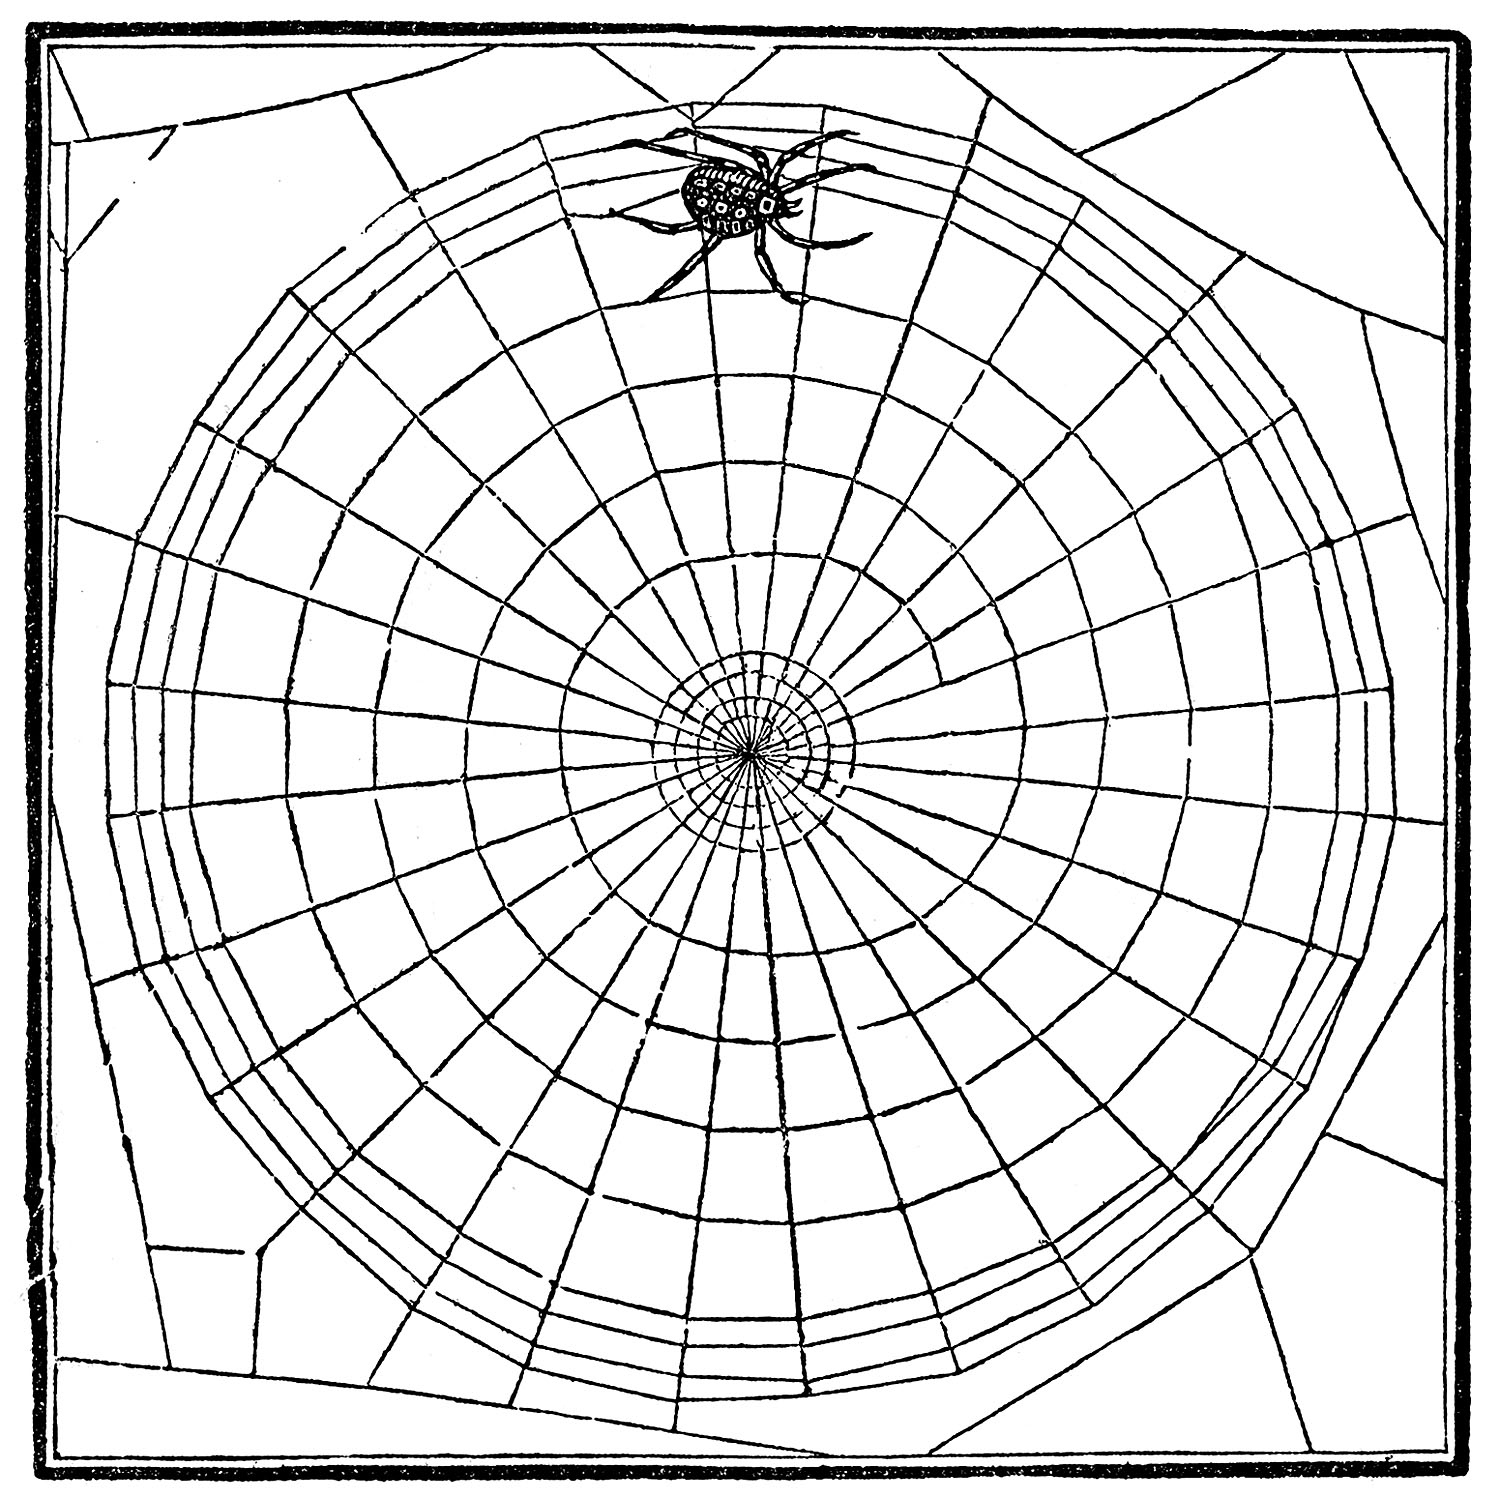 10 Spiders And Spider Web Clip Art